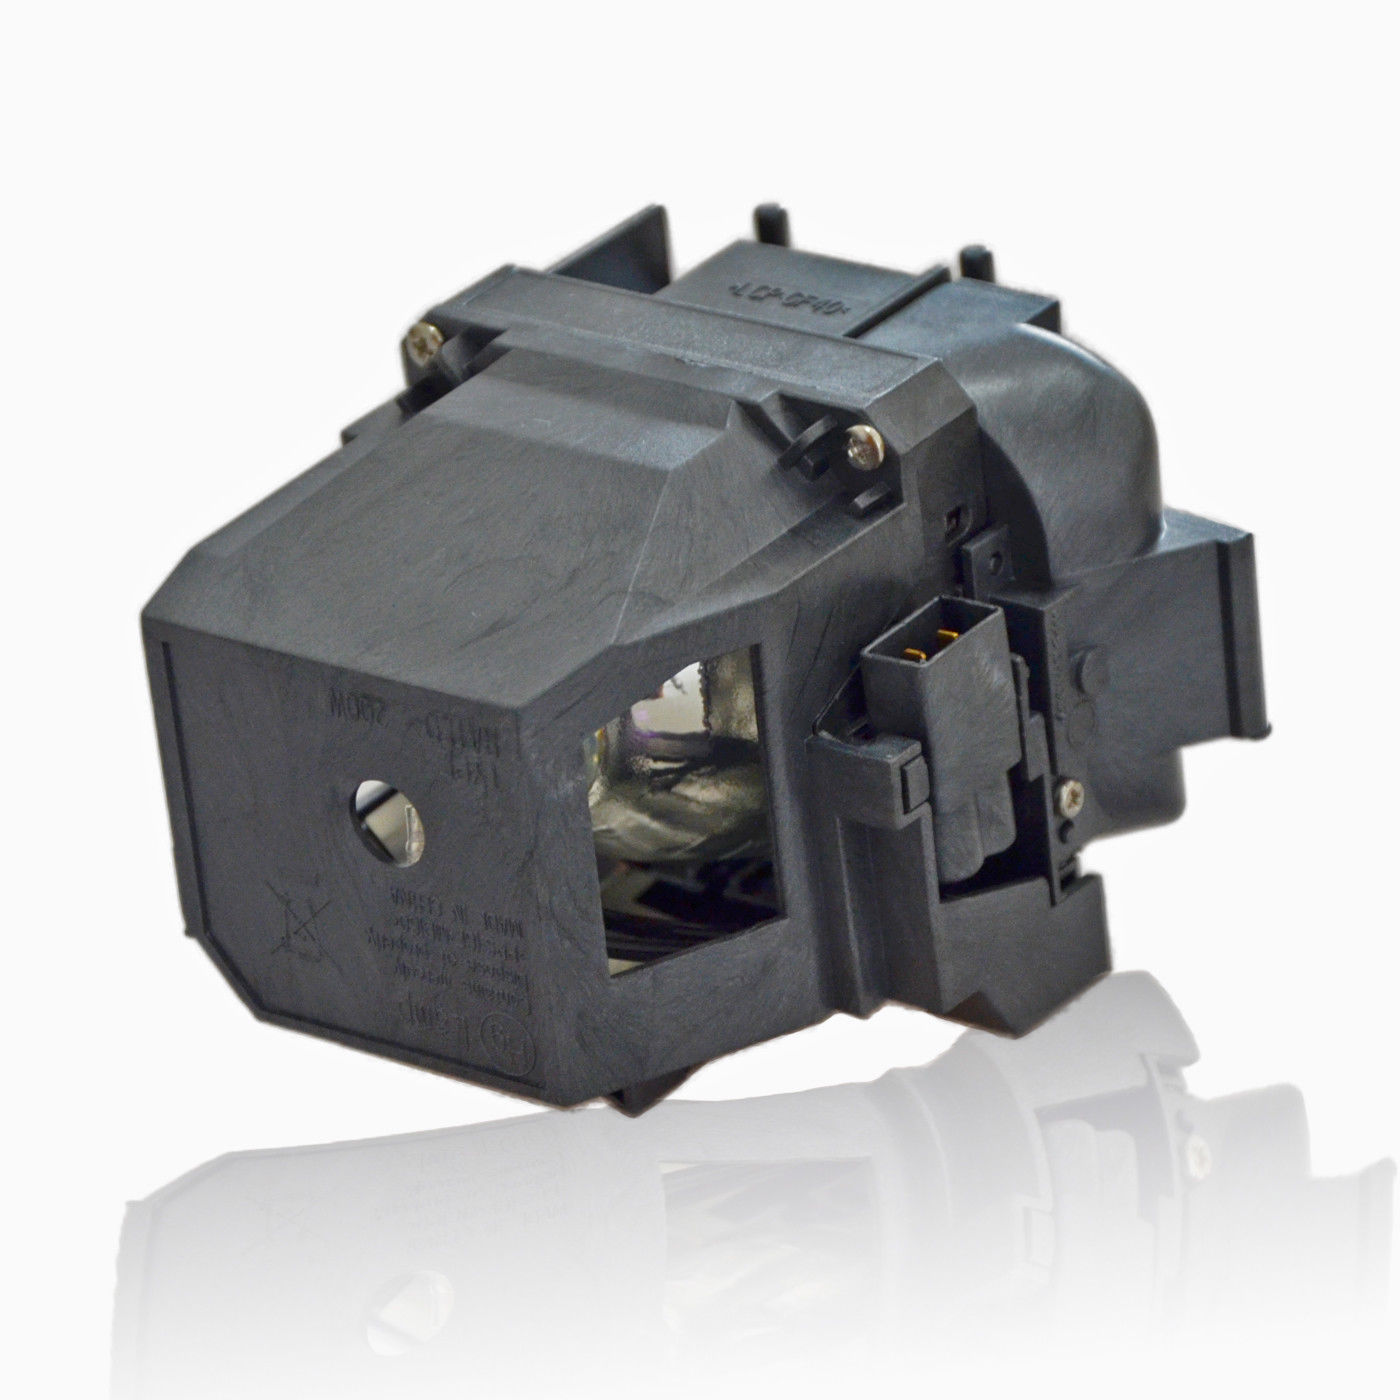 Replacement Projector Lamp for Epson ELPLP87, EB-535W EB-530S EB-530 EB-525W